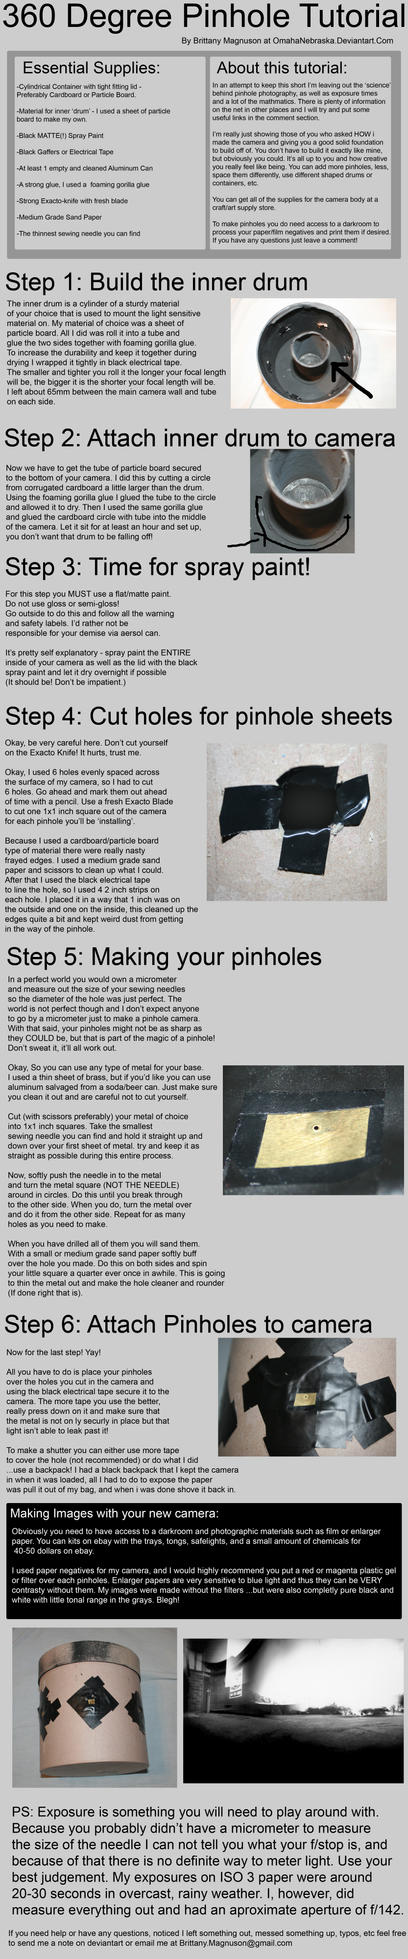 360 PINHOLE TUTORIAL by OmahaNebraska